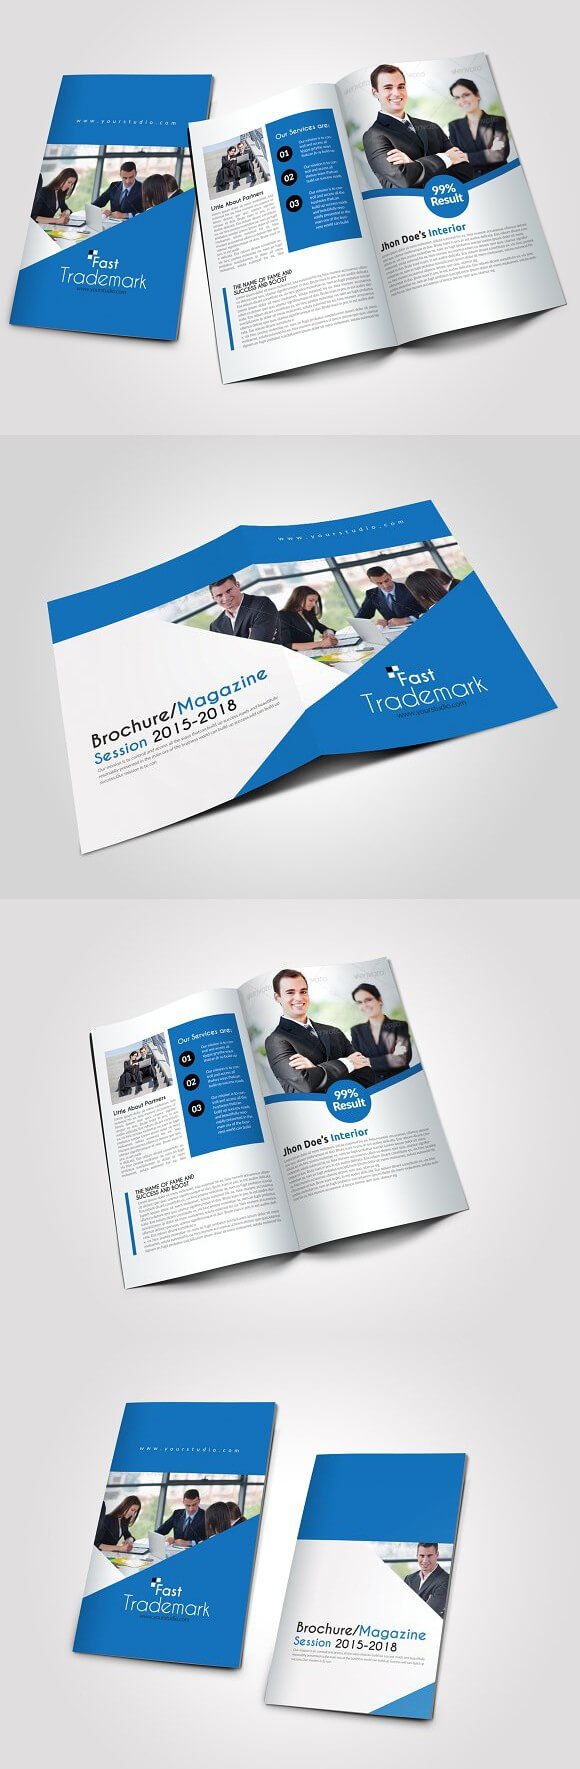 4 Pages Business Bi Fold Brochure . Creative Business Card regarding Pages Business Card Template